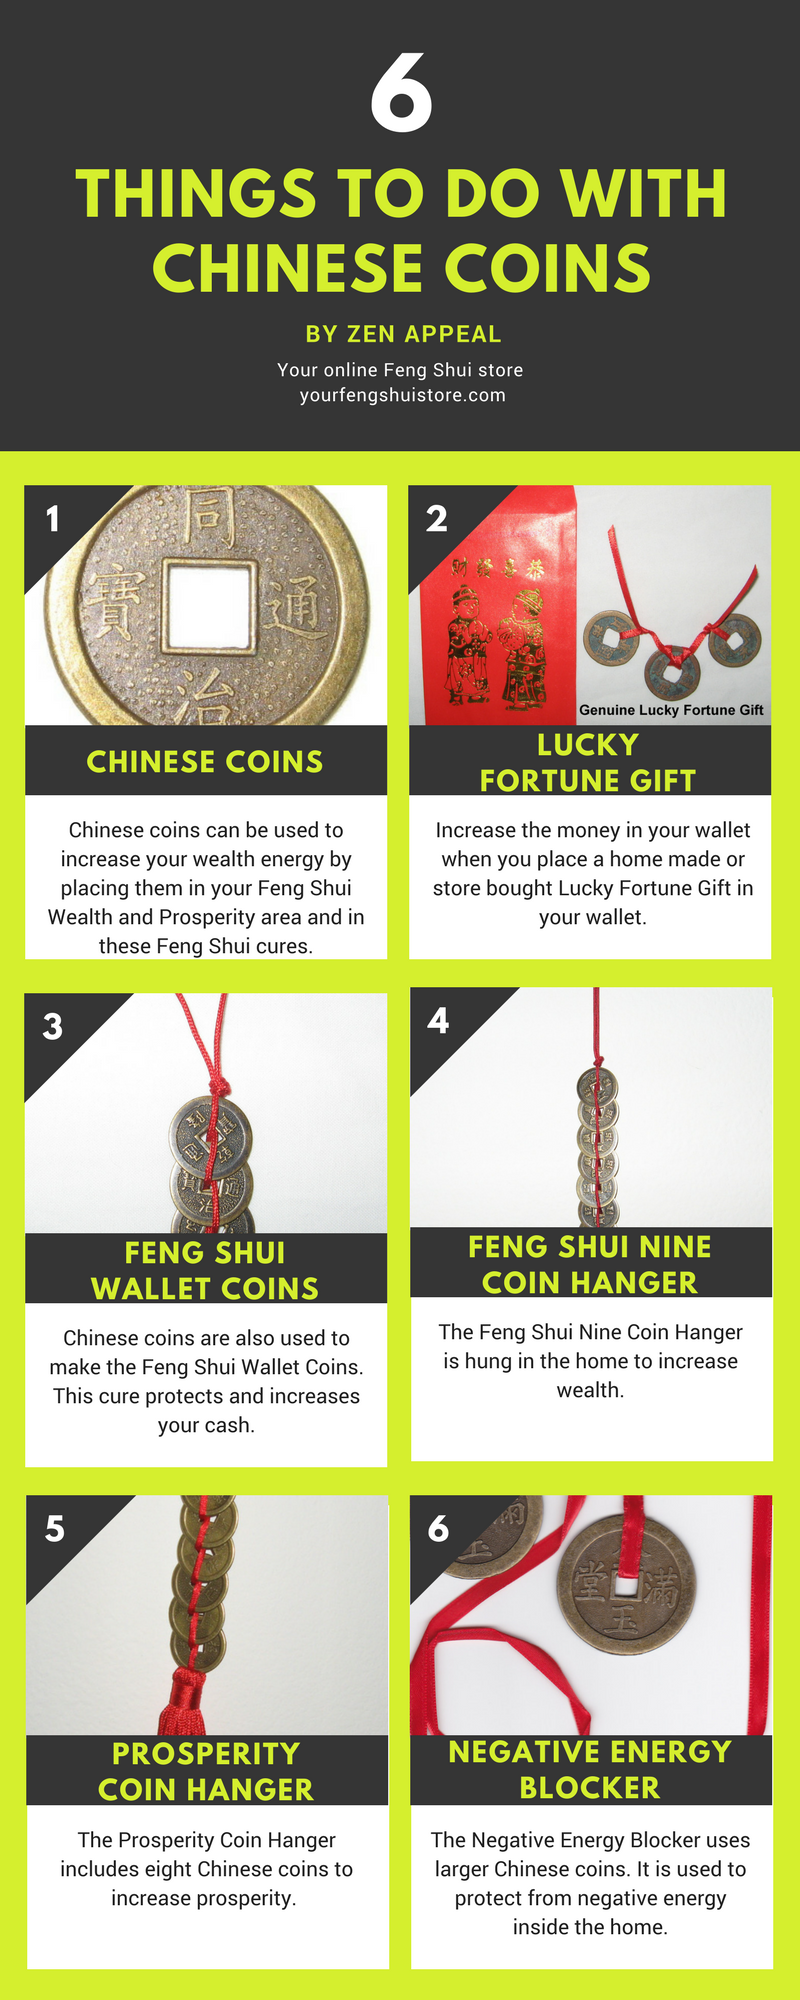 Things to do with Chinese Coins